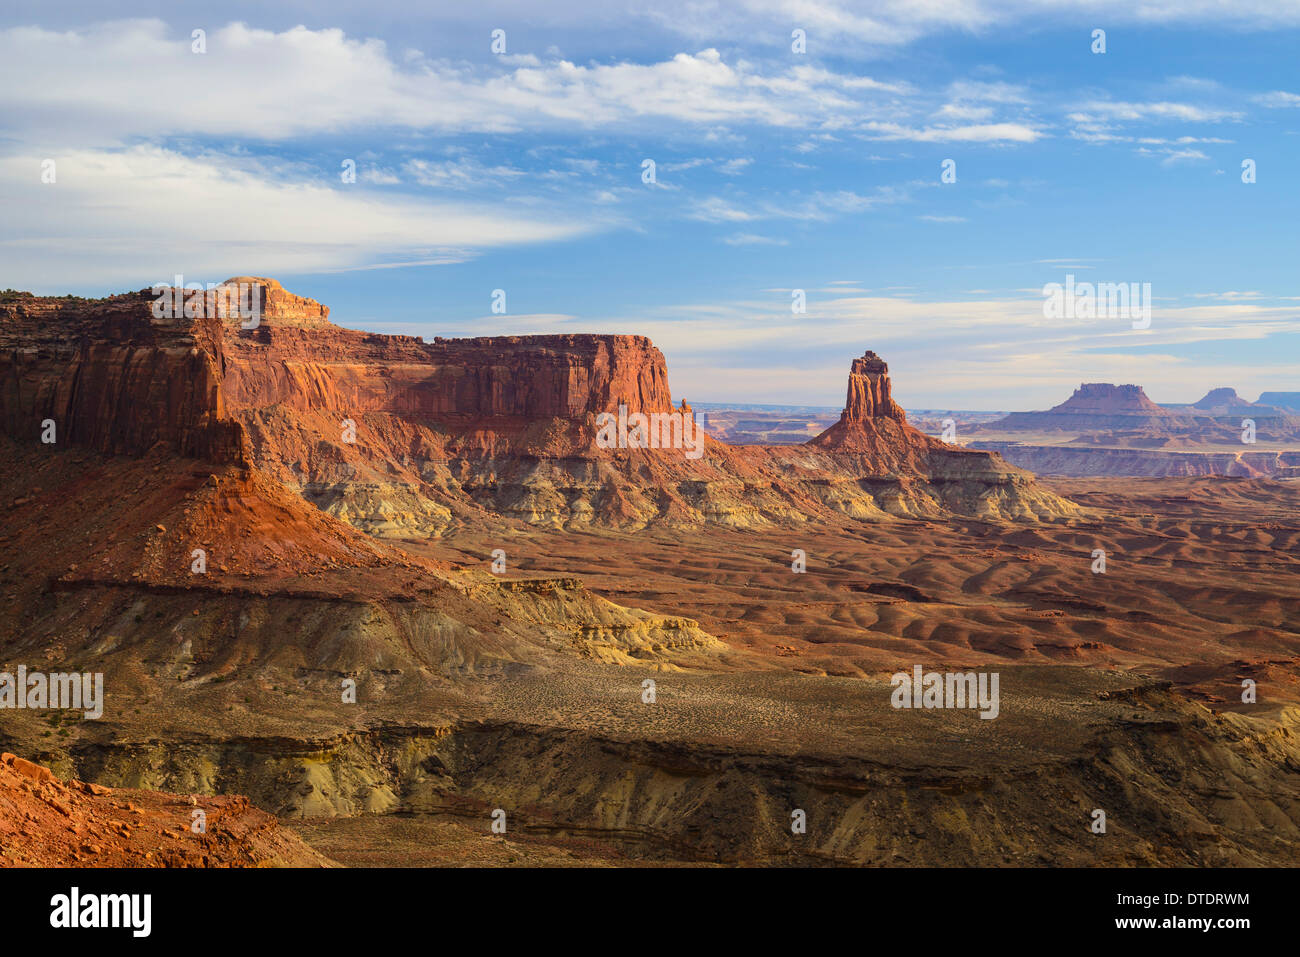 Candlestick Butte, Canyonlands National Park, Islands in the Sky, Utah, USA - Stock Image